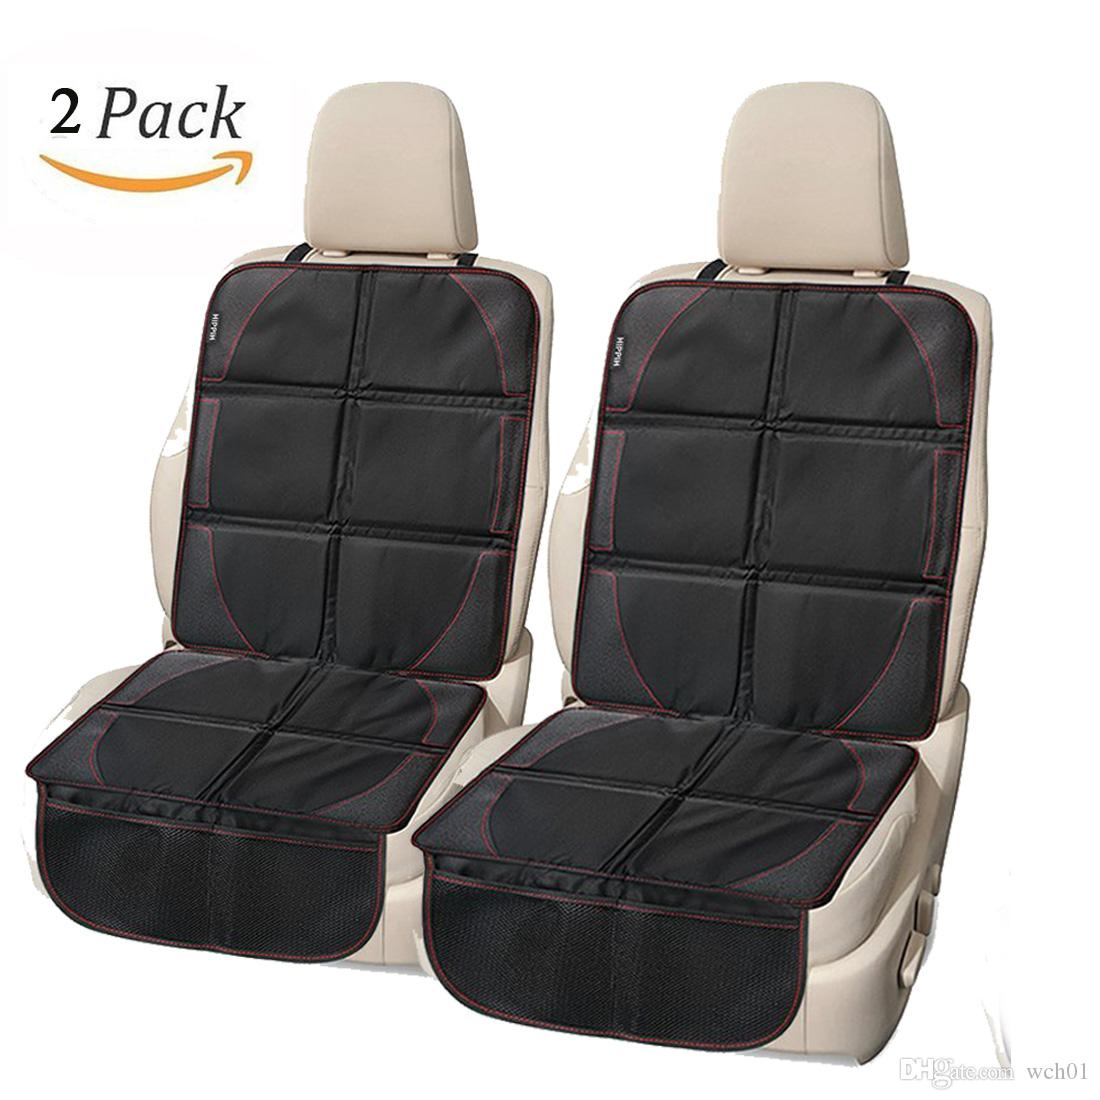 baby car seat covers waterproof velcromag. Black Bedroom Furniture Sets. Home Design Ideas